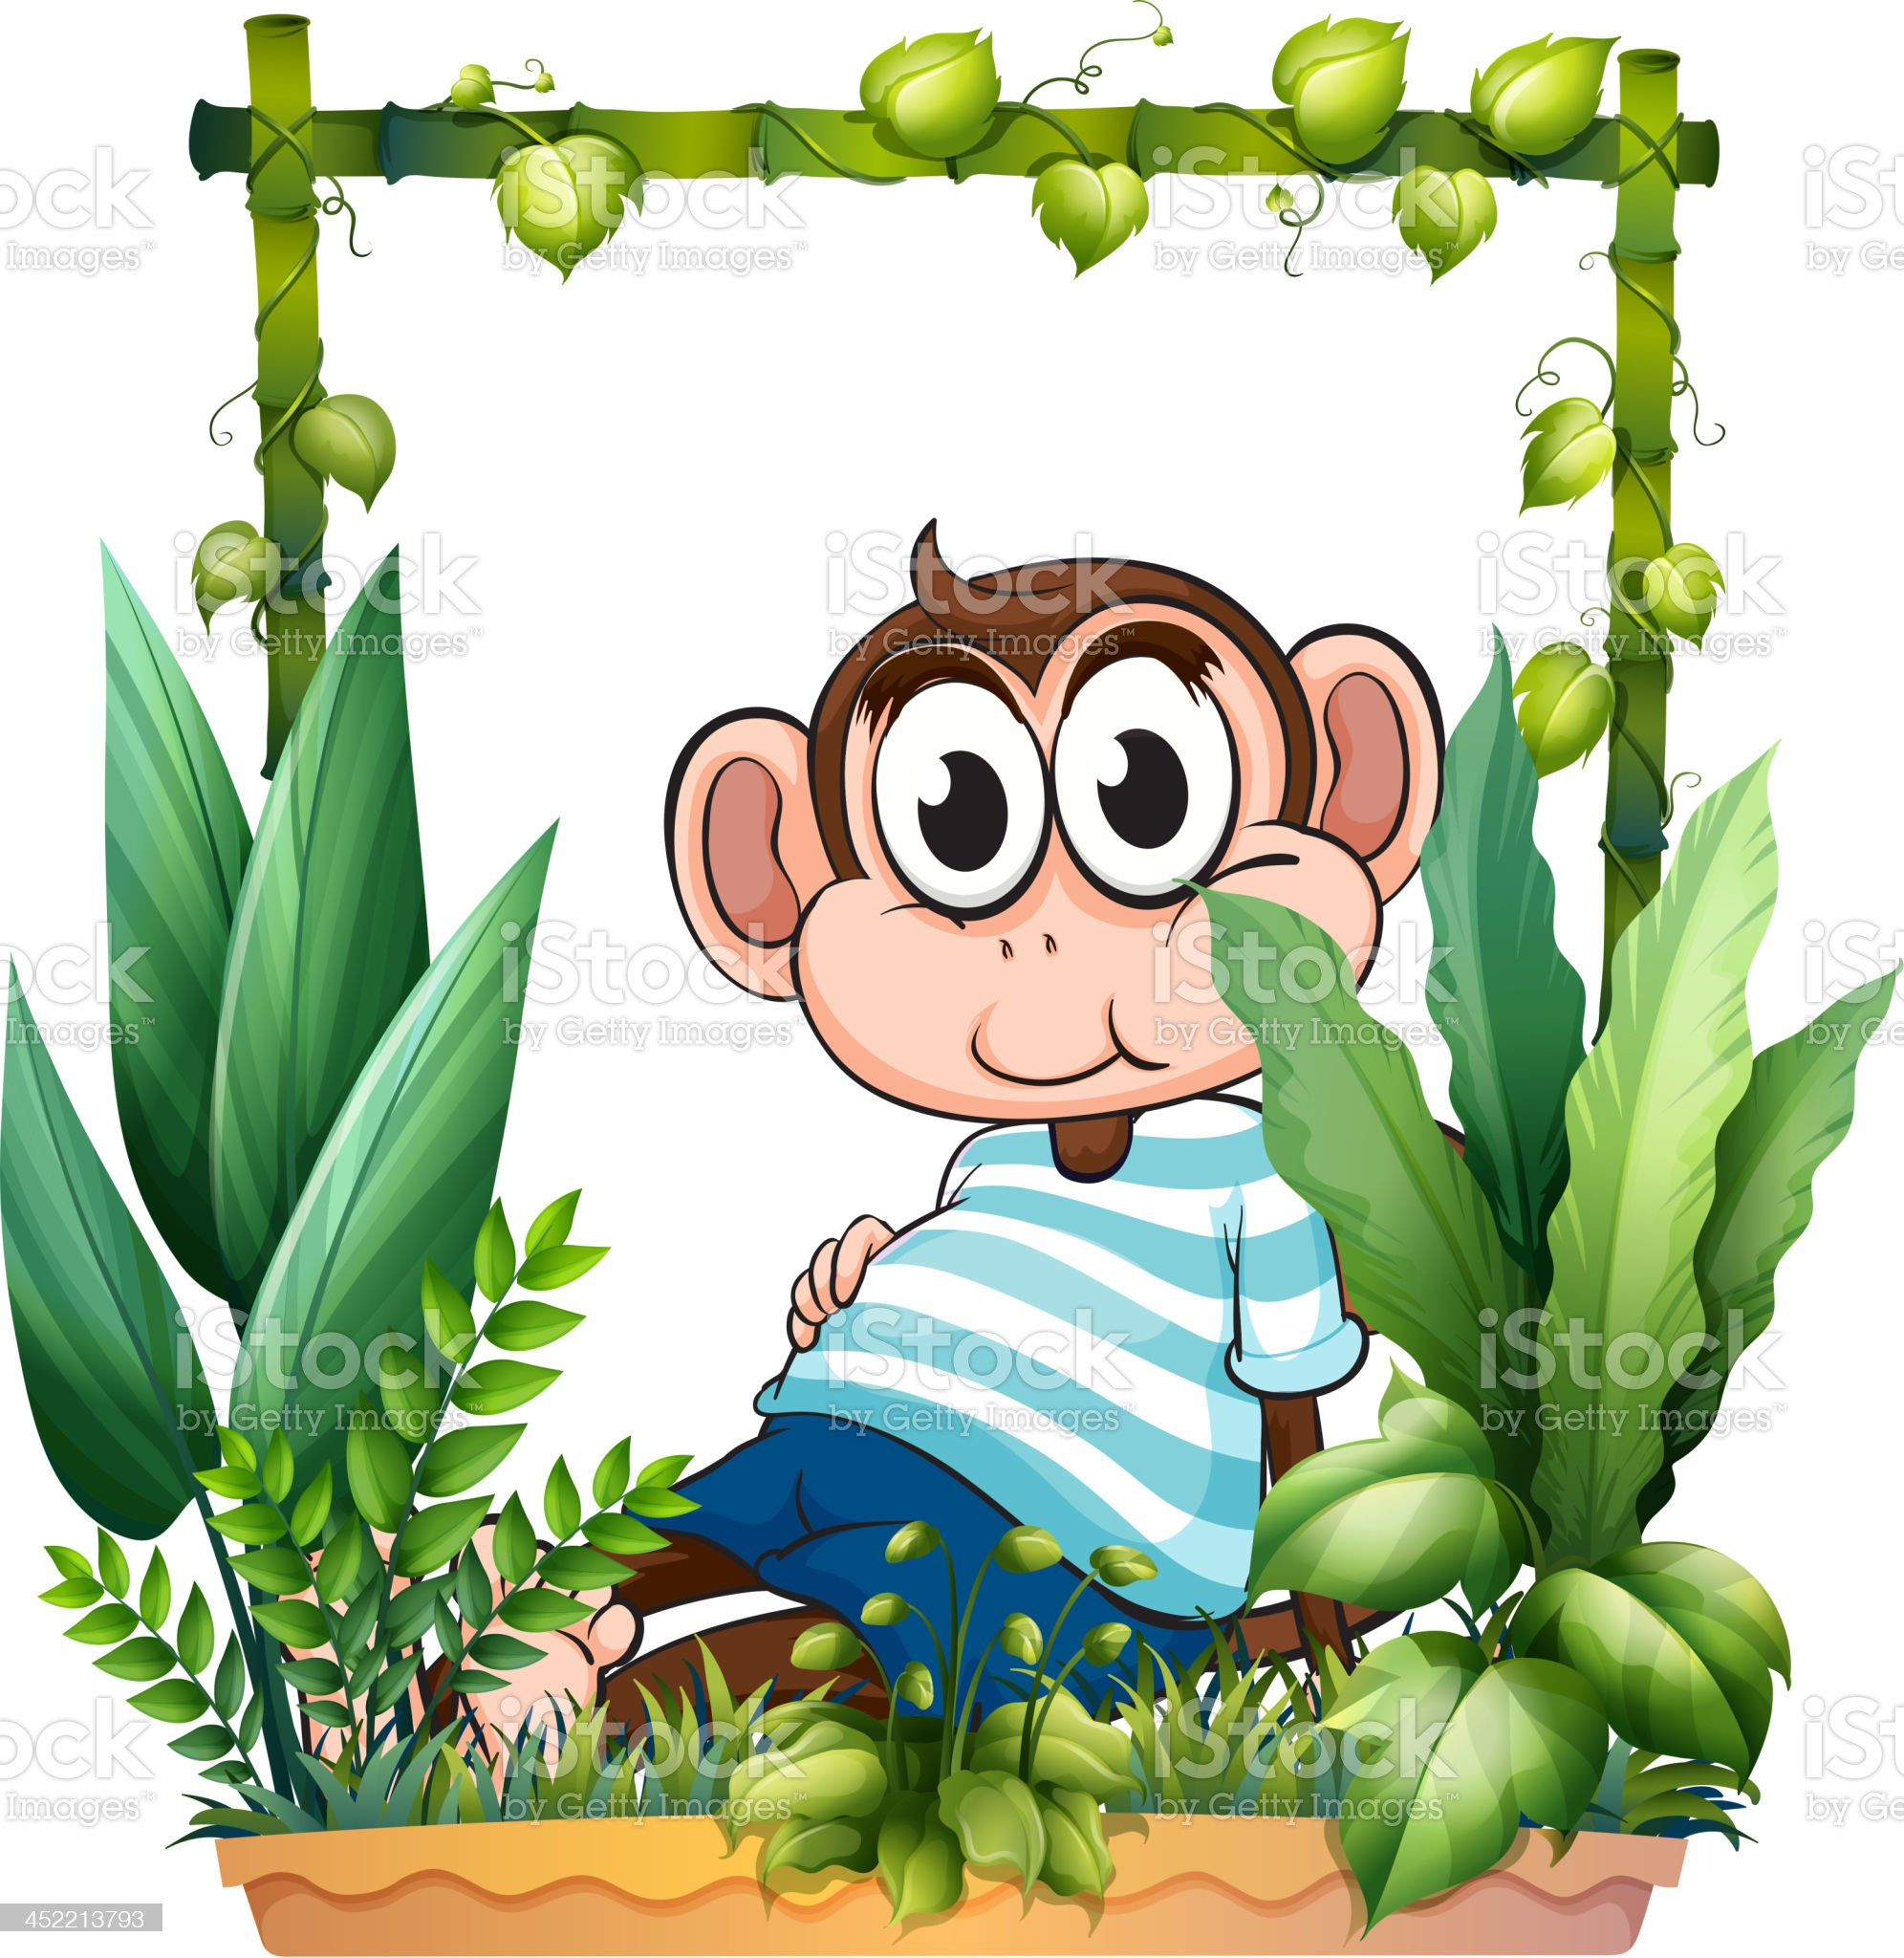 Monkey with a blue shirt in the garden royalty-free stock vector art